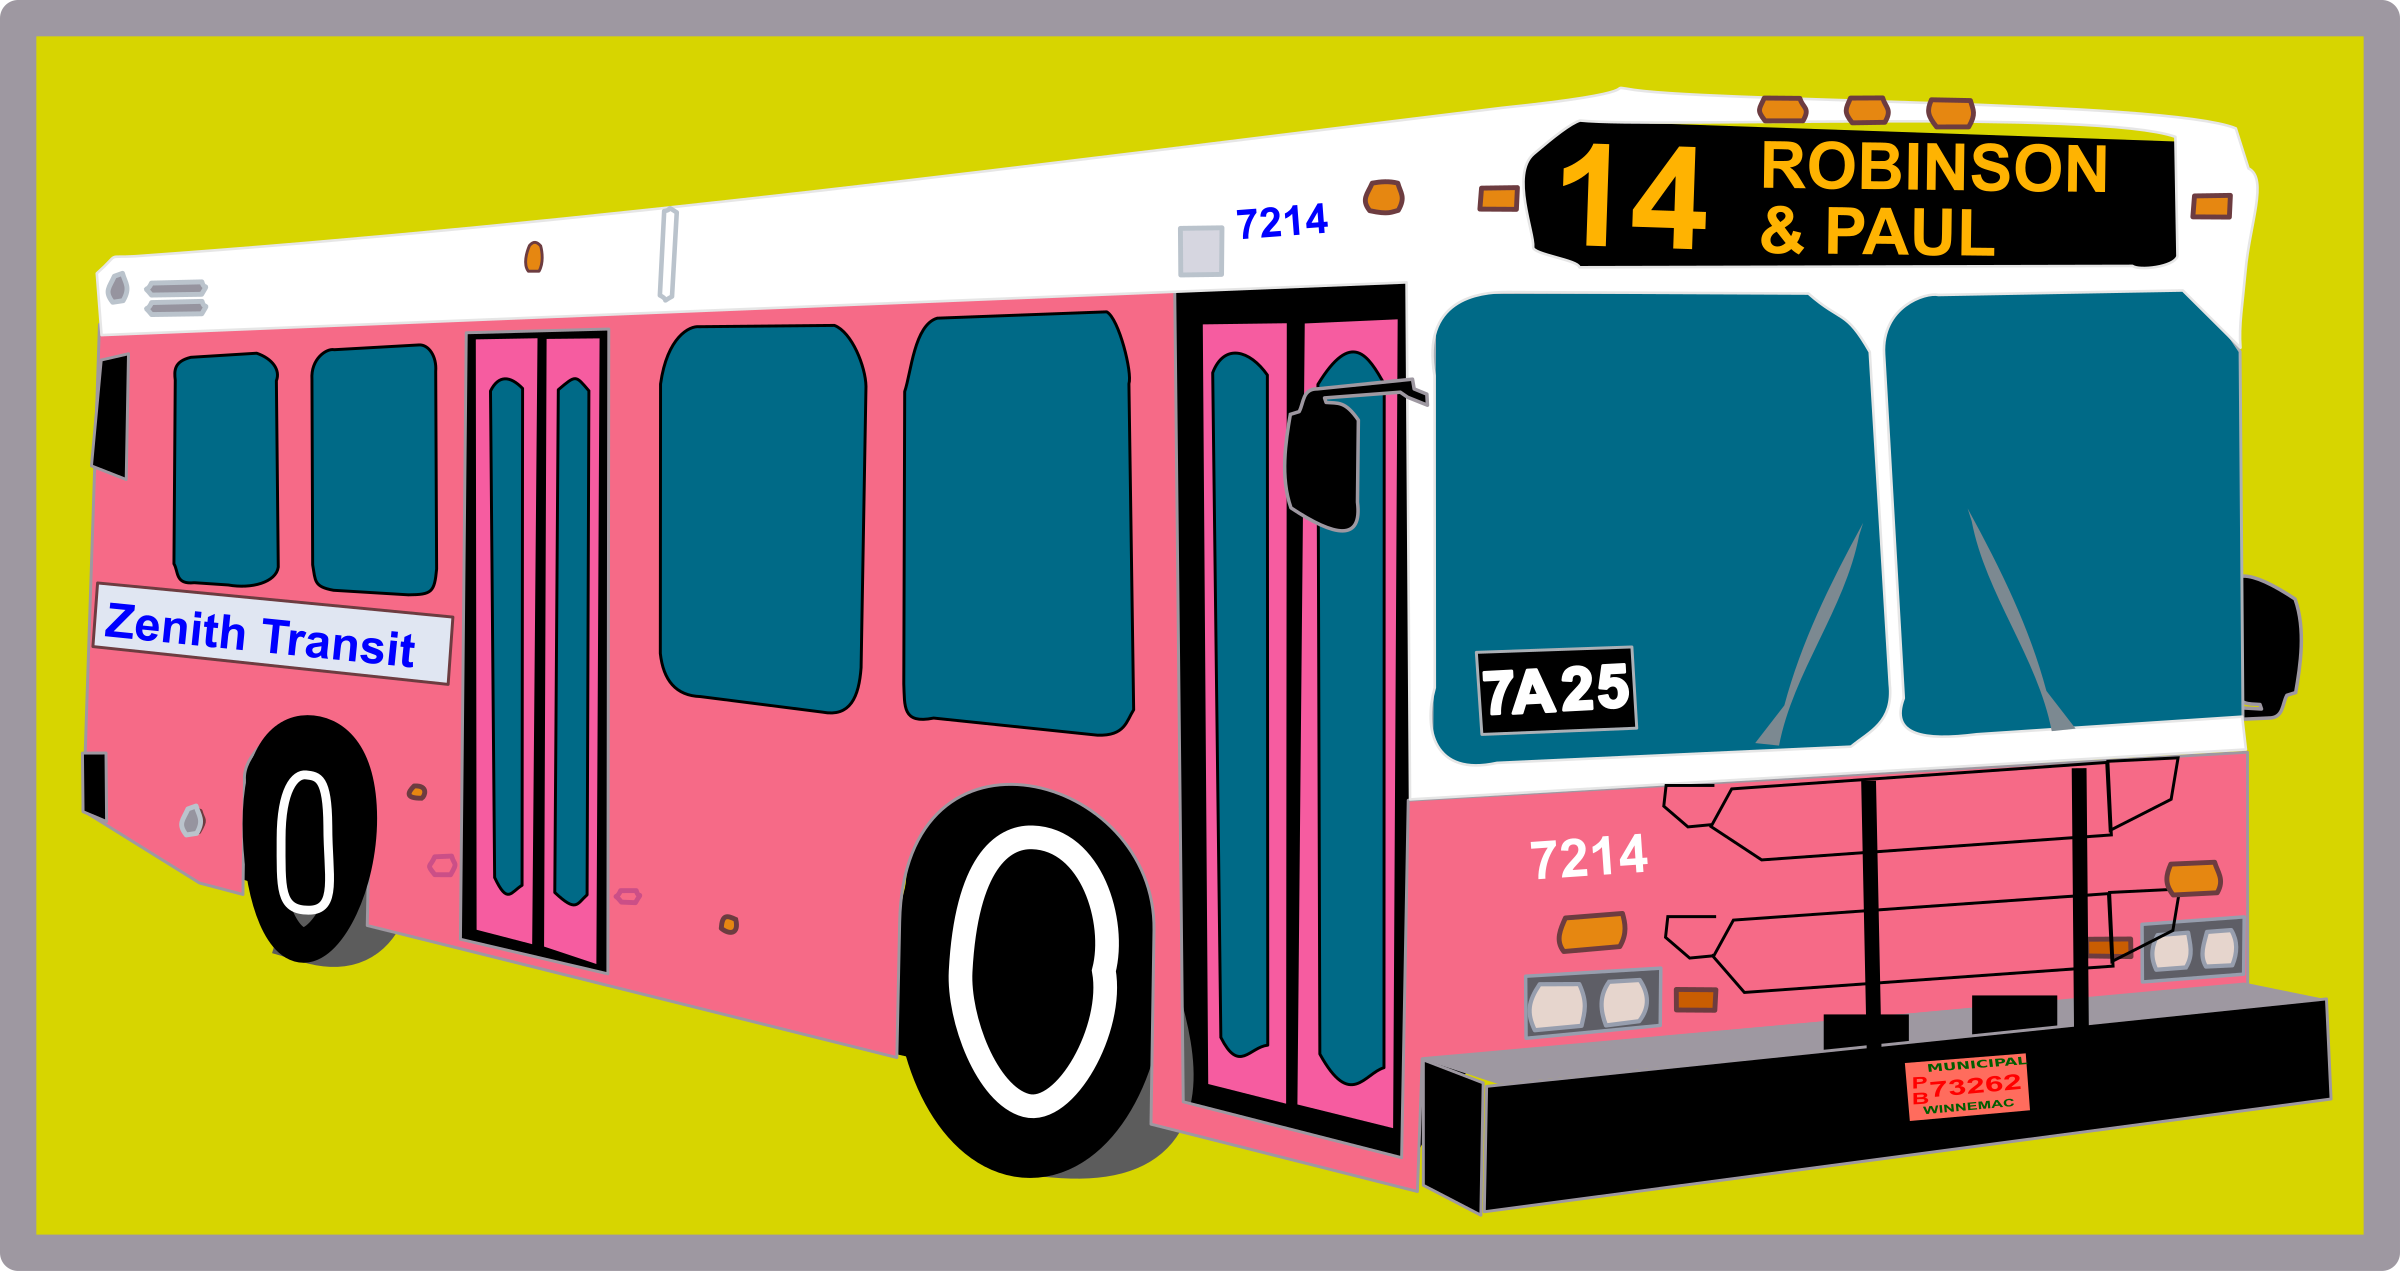 City Bus by Rfc1394